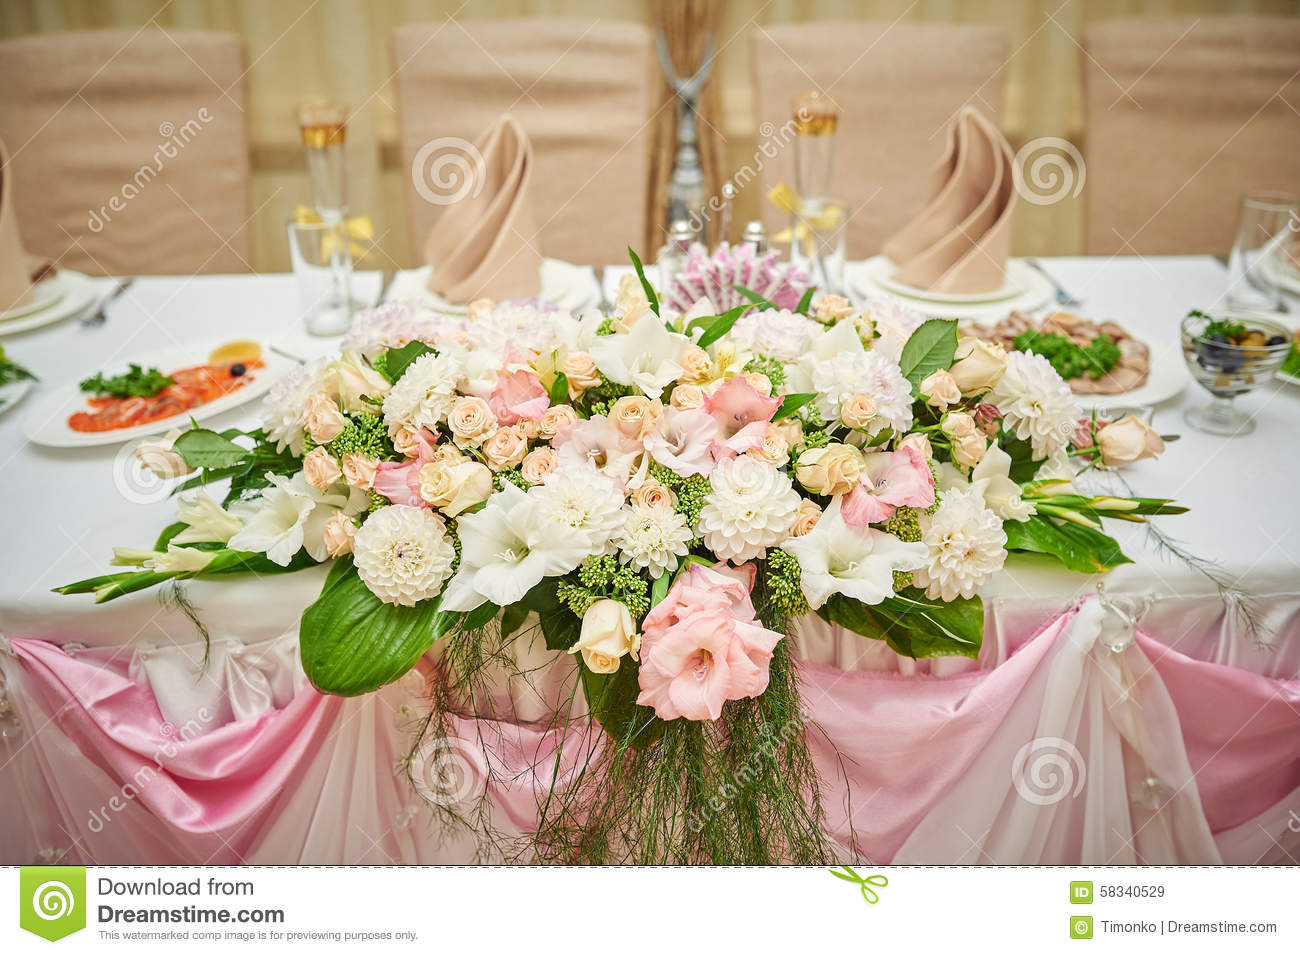 Merveilleux Wedding Table Bride And Groom Decorated With Flowers